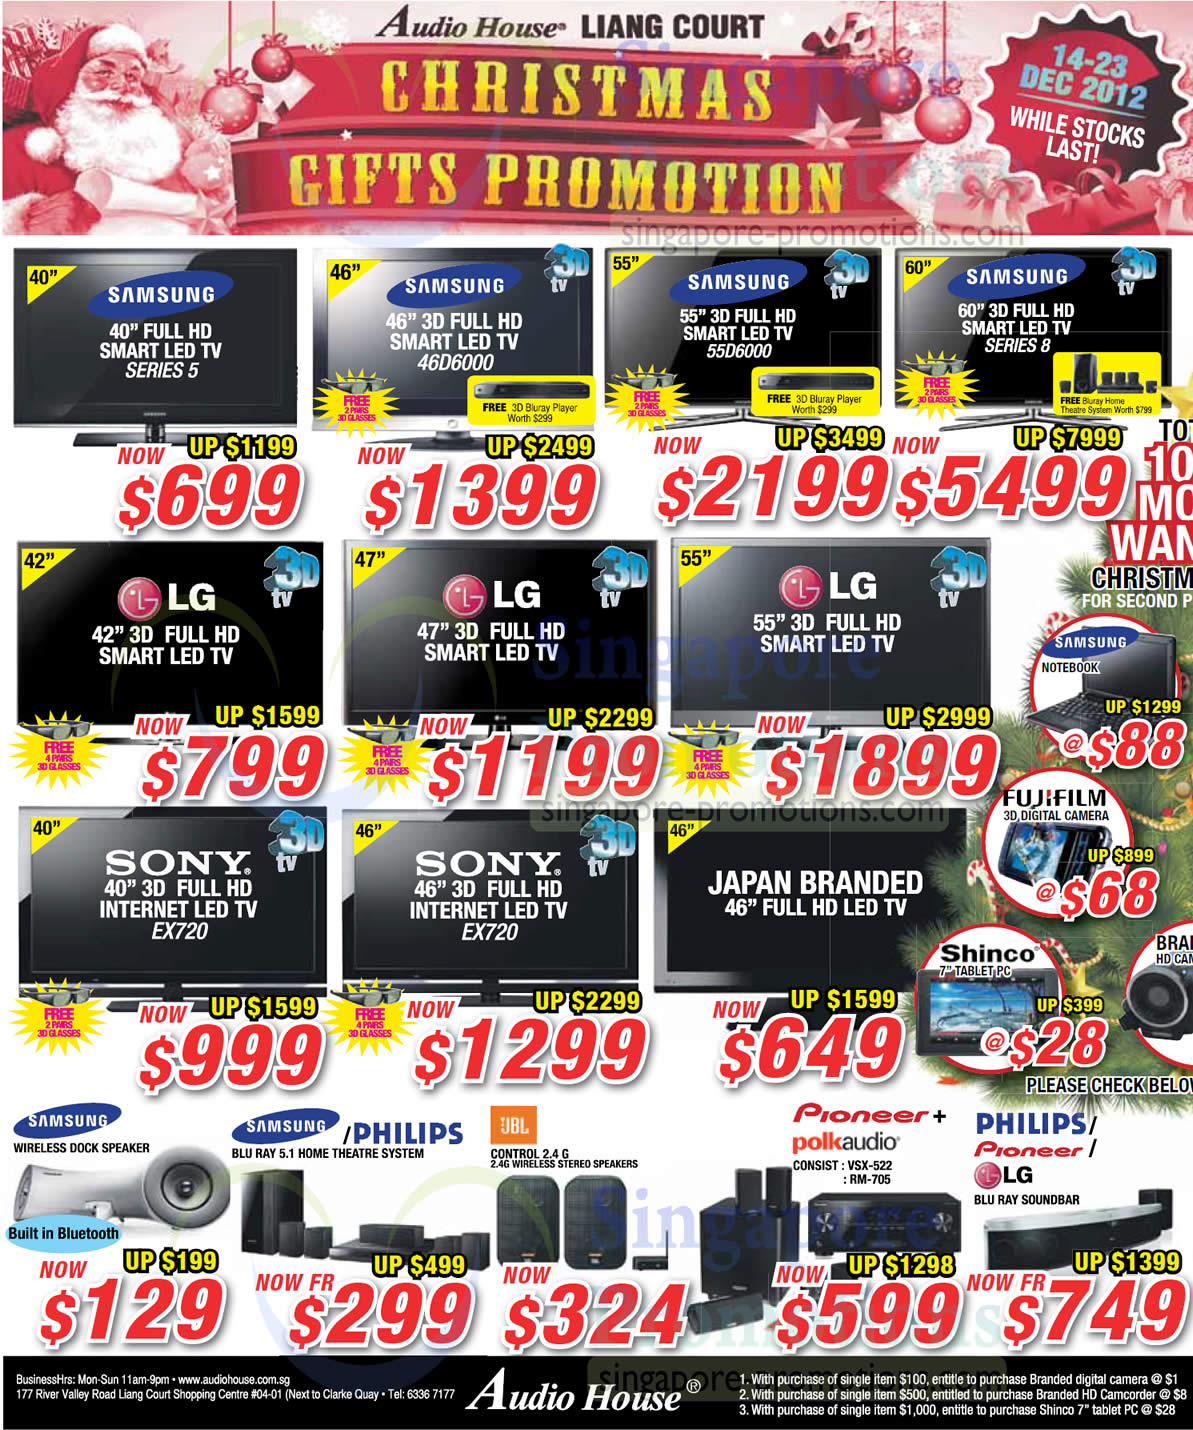 LED TVs, Home Theatre Systems, Samsung, LG, Sony, JBL, Philips, Pioneer